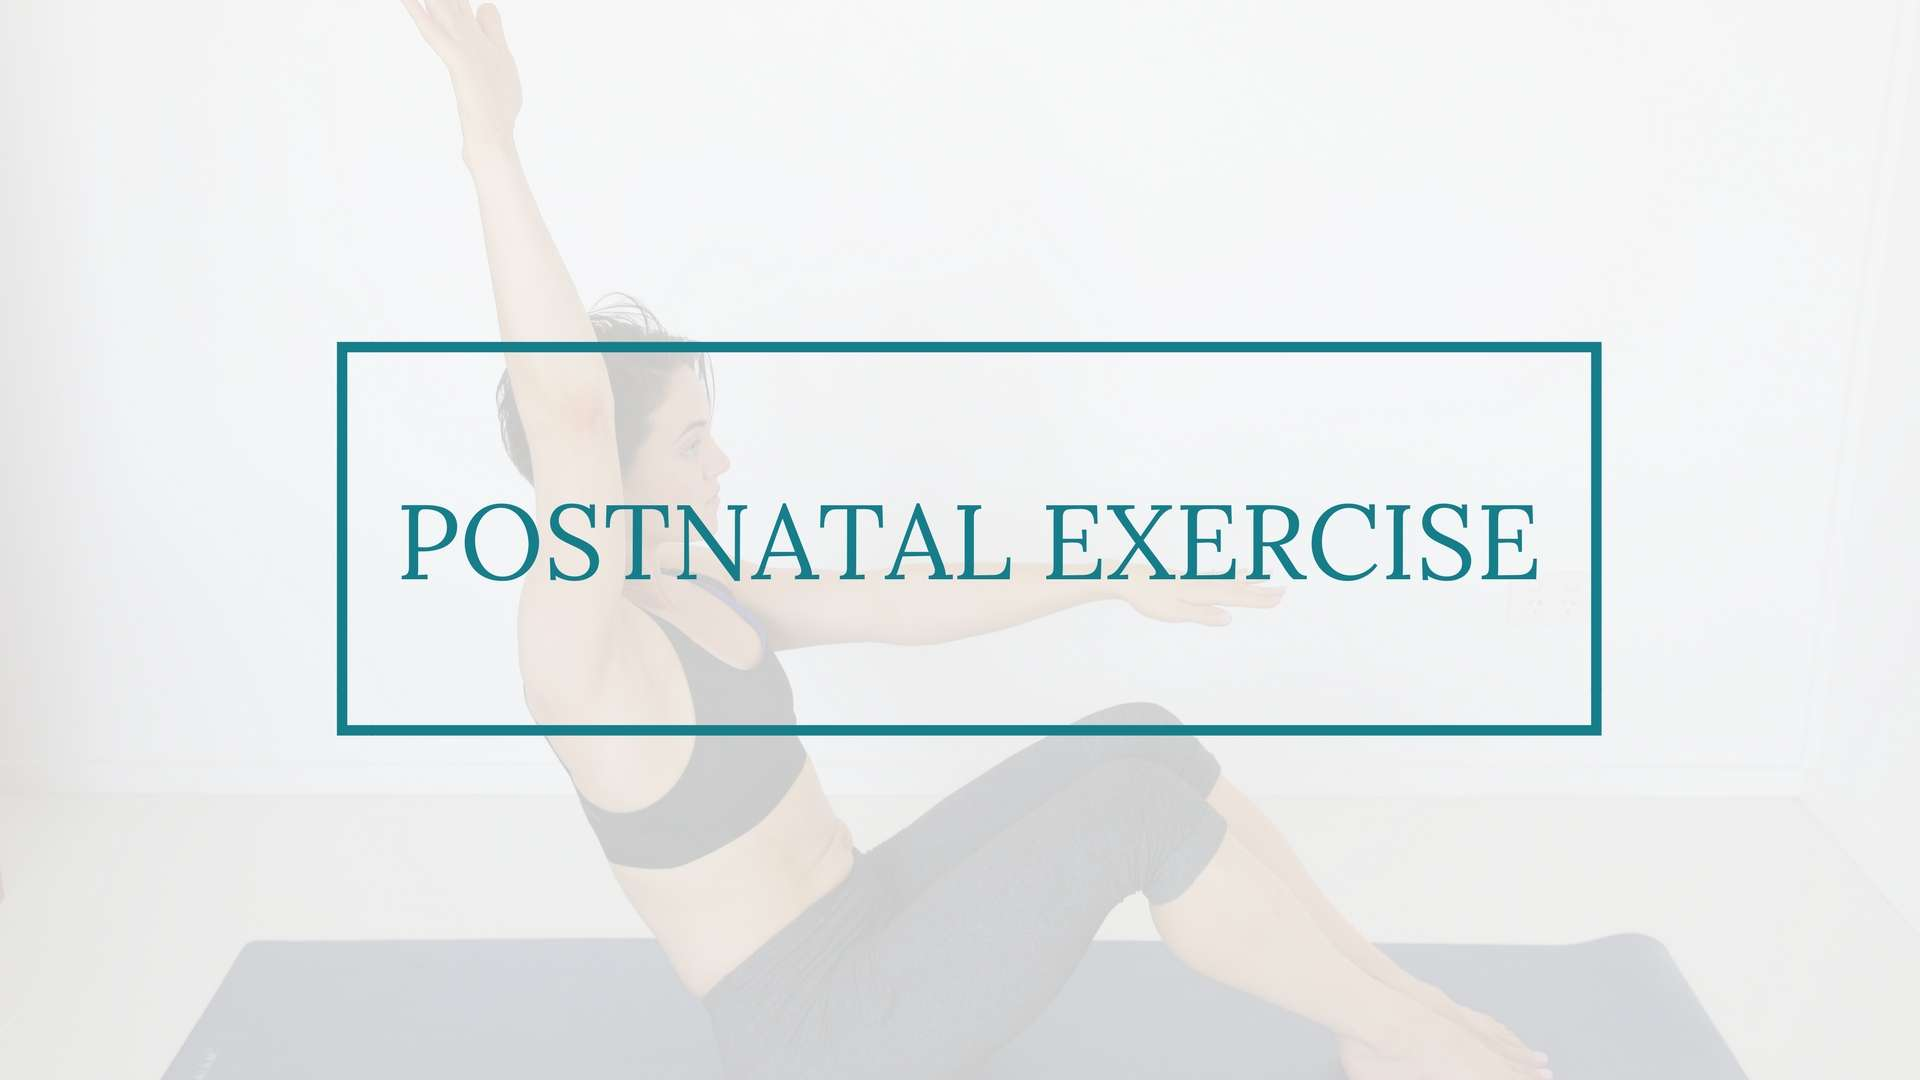 image of postnatal exercise